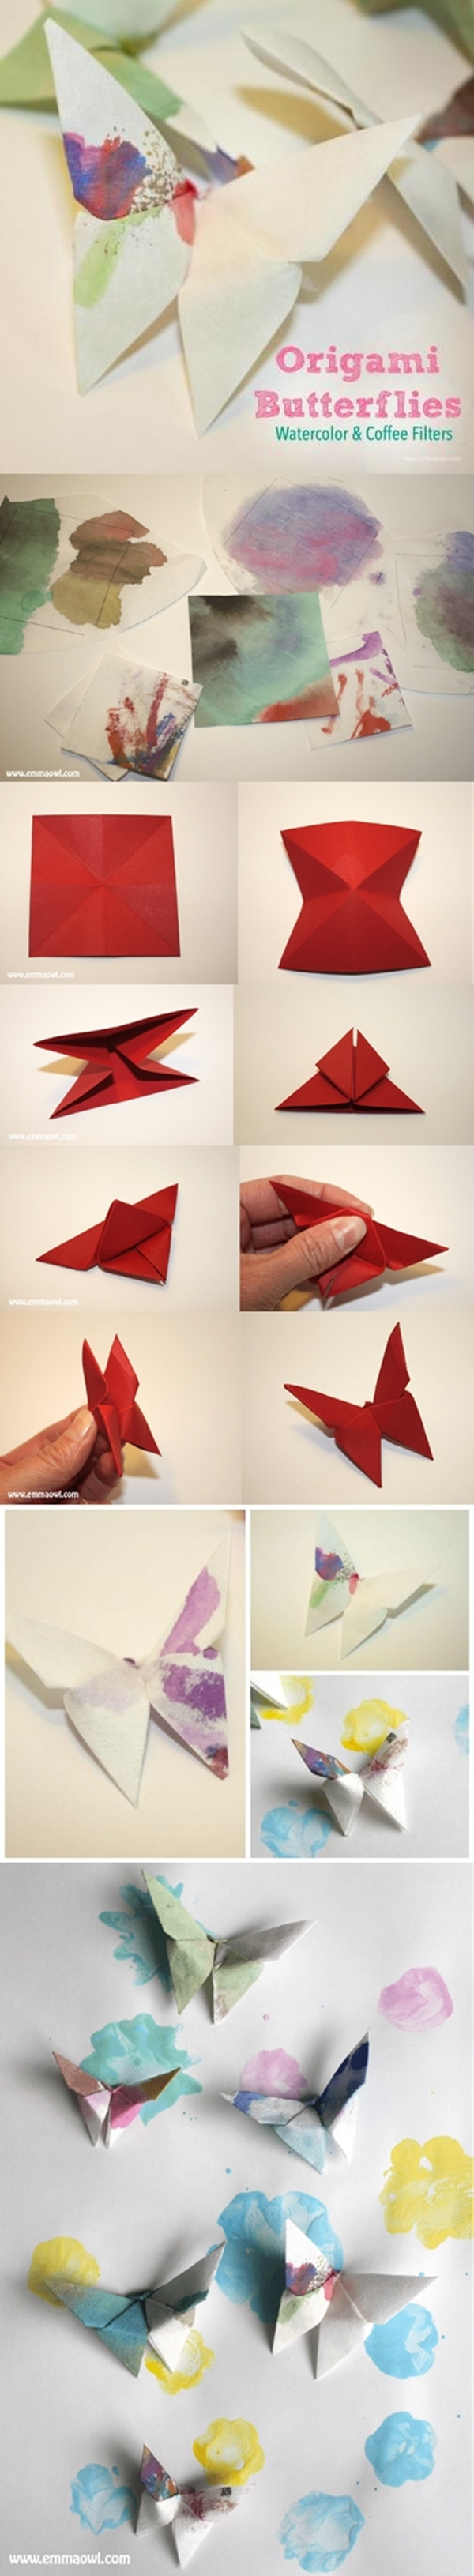 simple-origami-crafts-for-kids-to-enhance-their-creativity